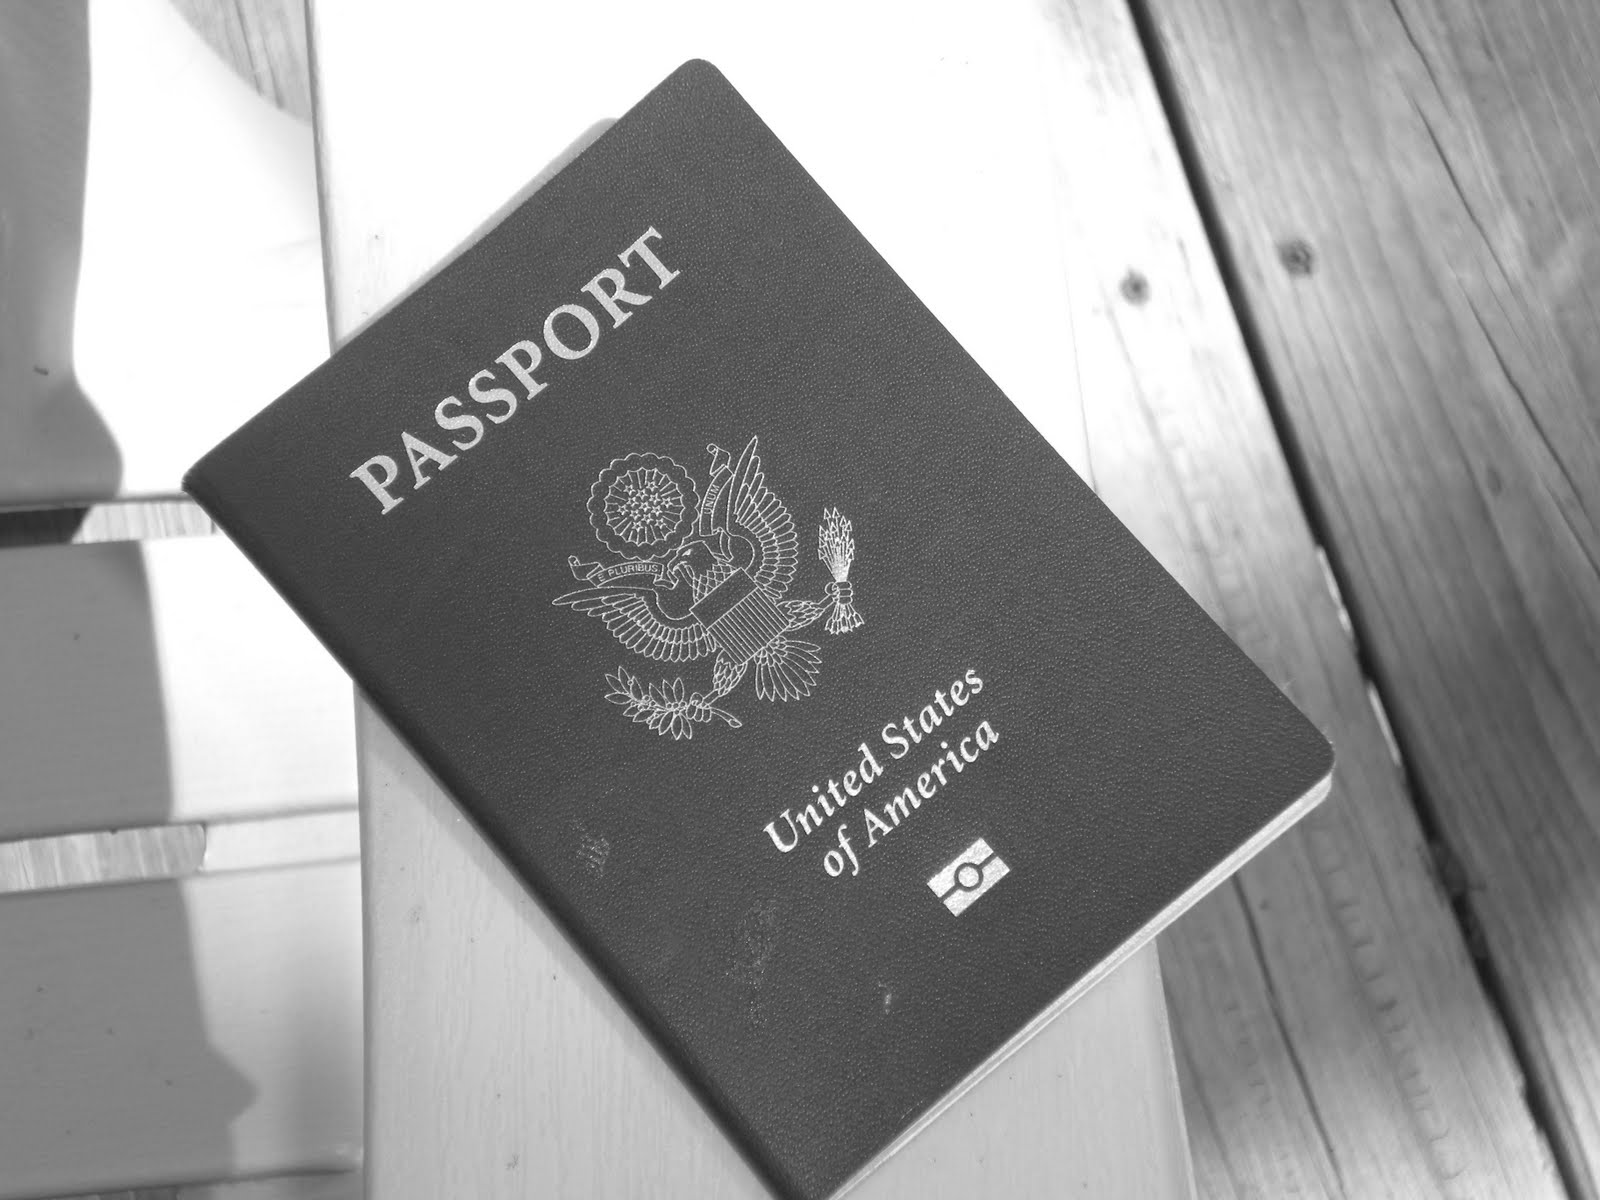 Fixing A Travel Mistake Has Passport Will Travel - My flight to des moines